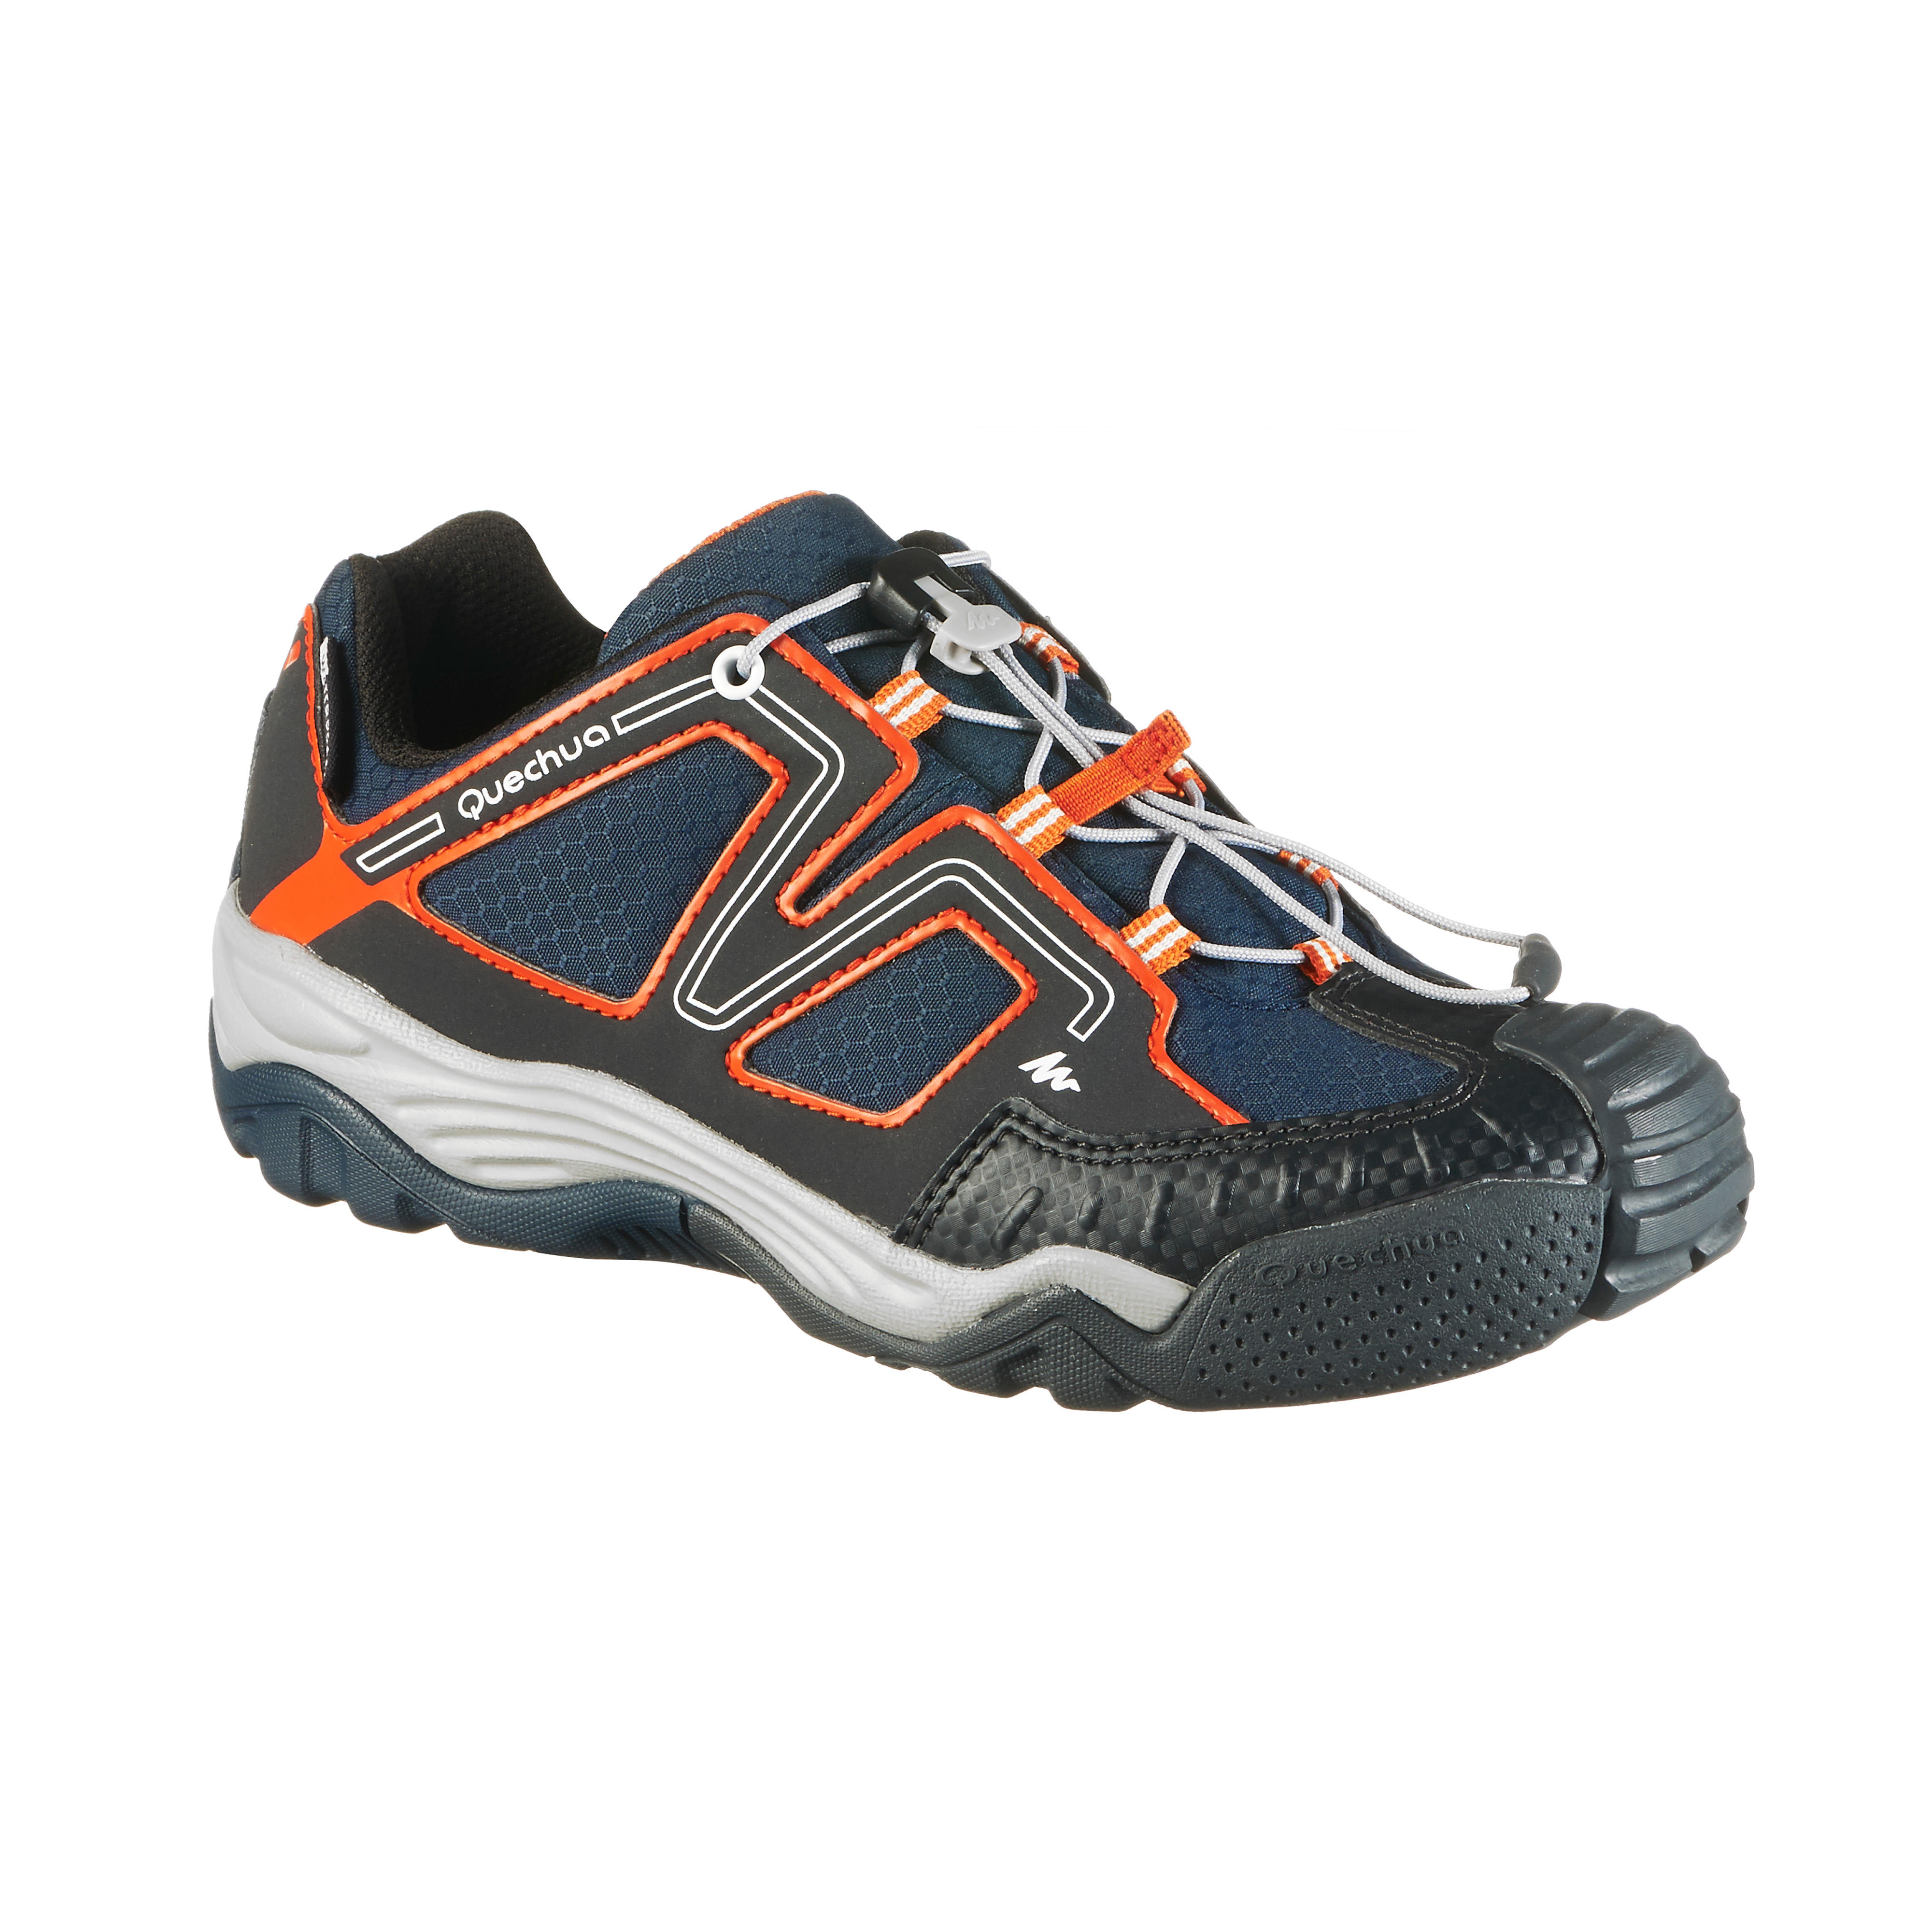 Crossrock Children's Waterproof Hiking Shoes - Blue/Orange